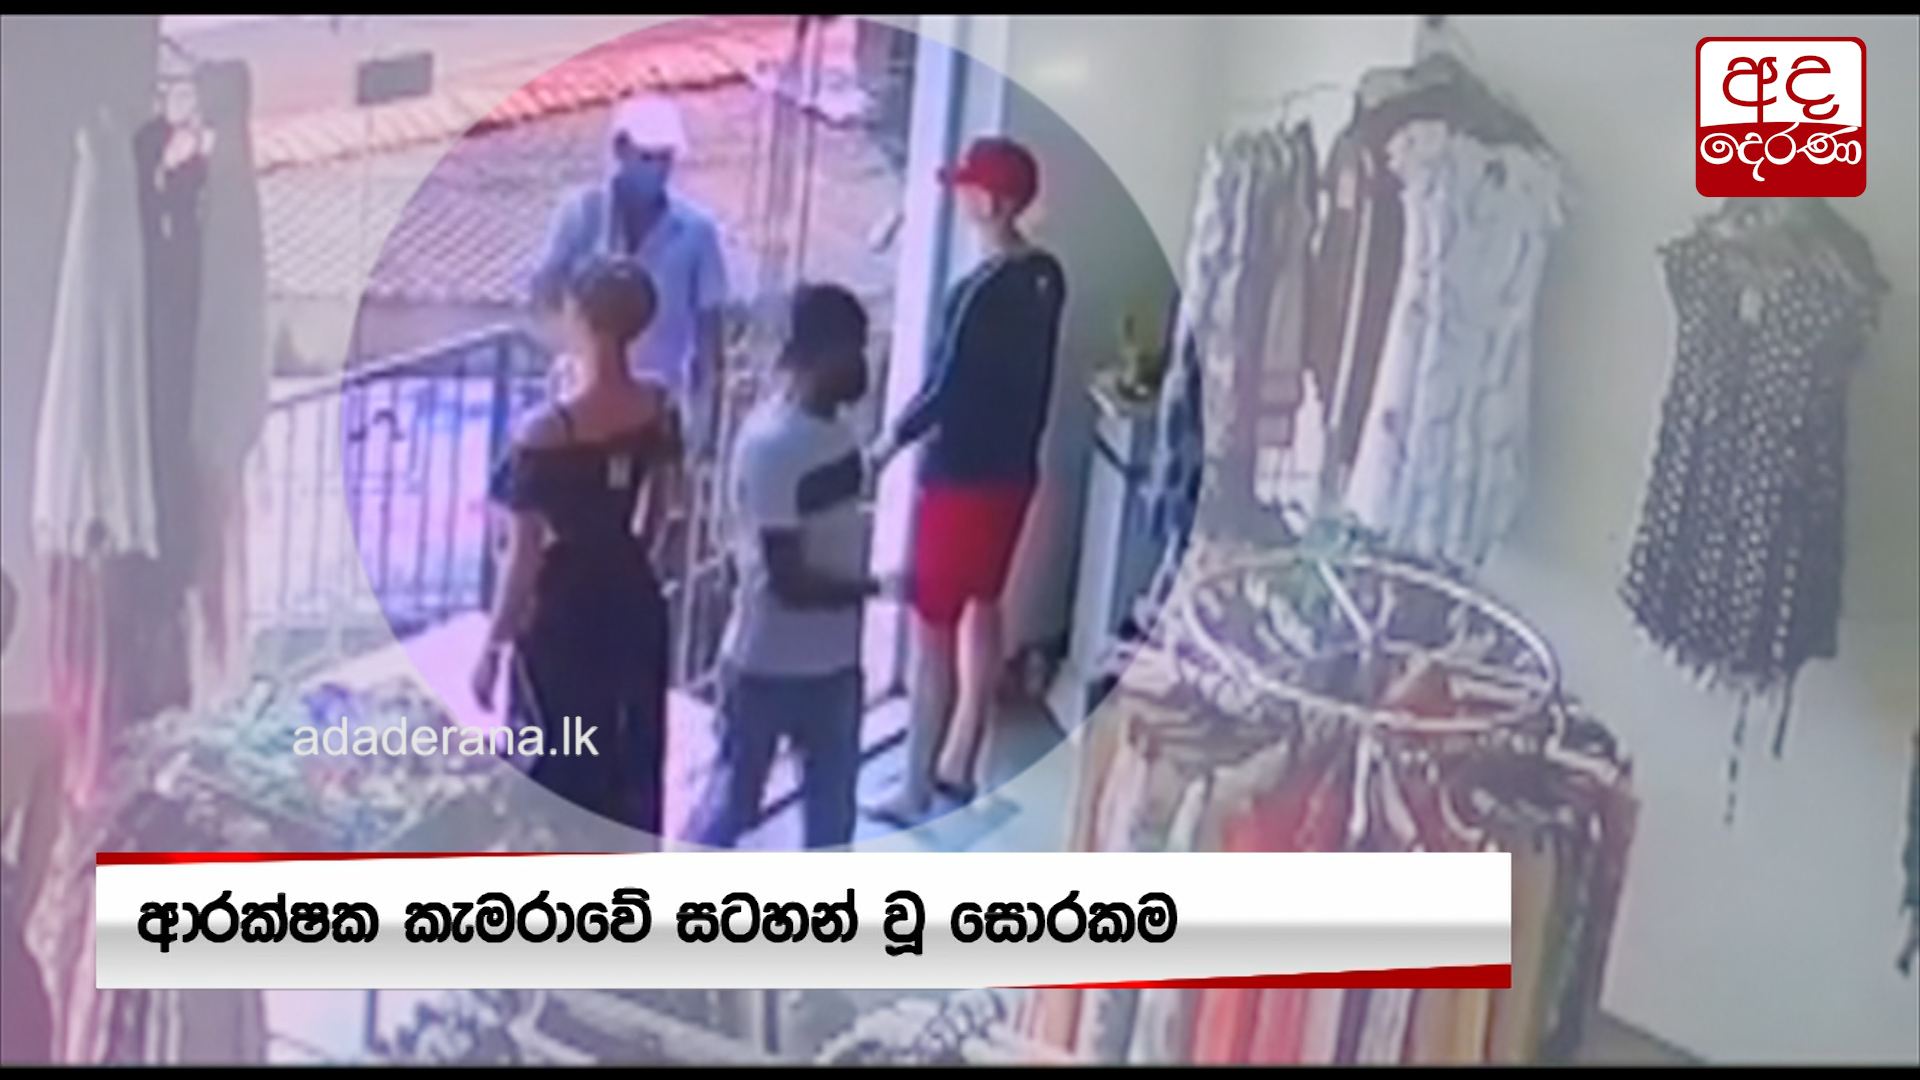 CCTV: theft at clothing store in Homagama caught on camera